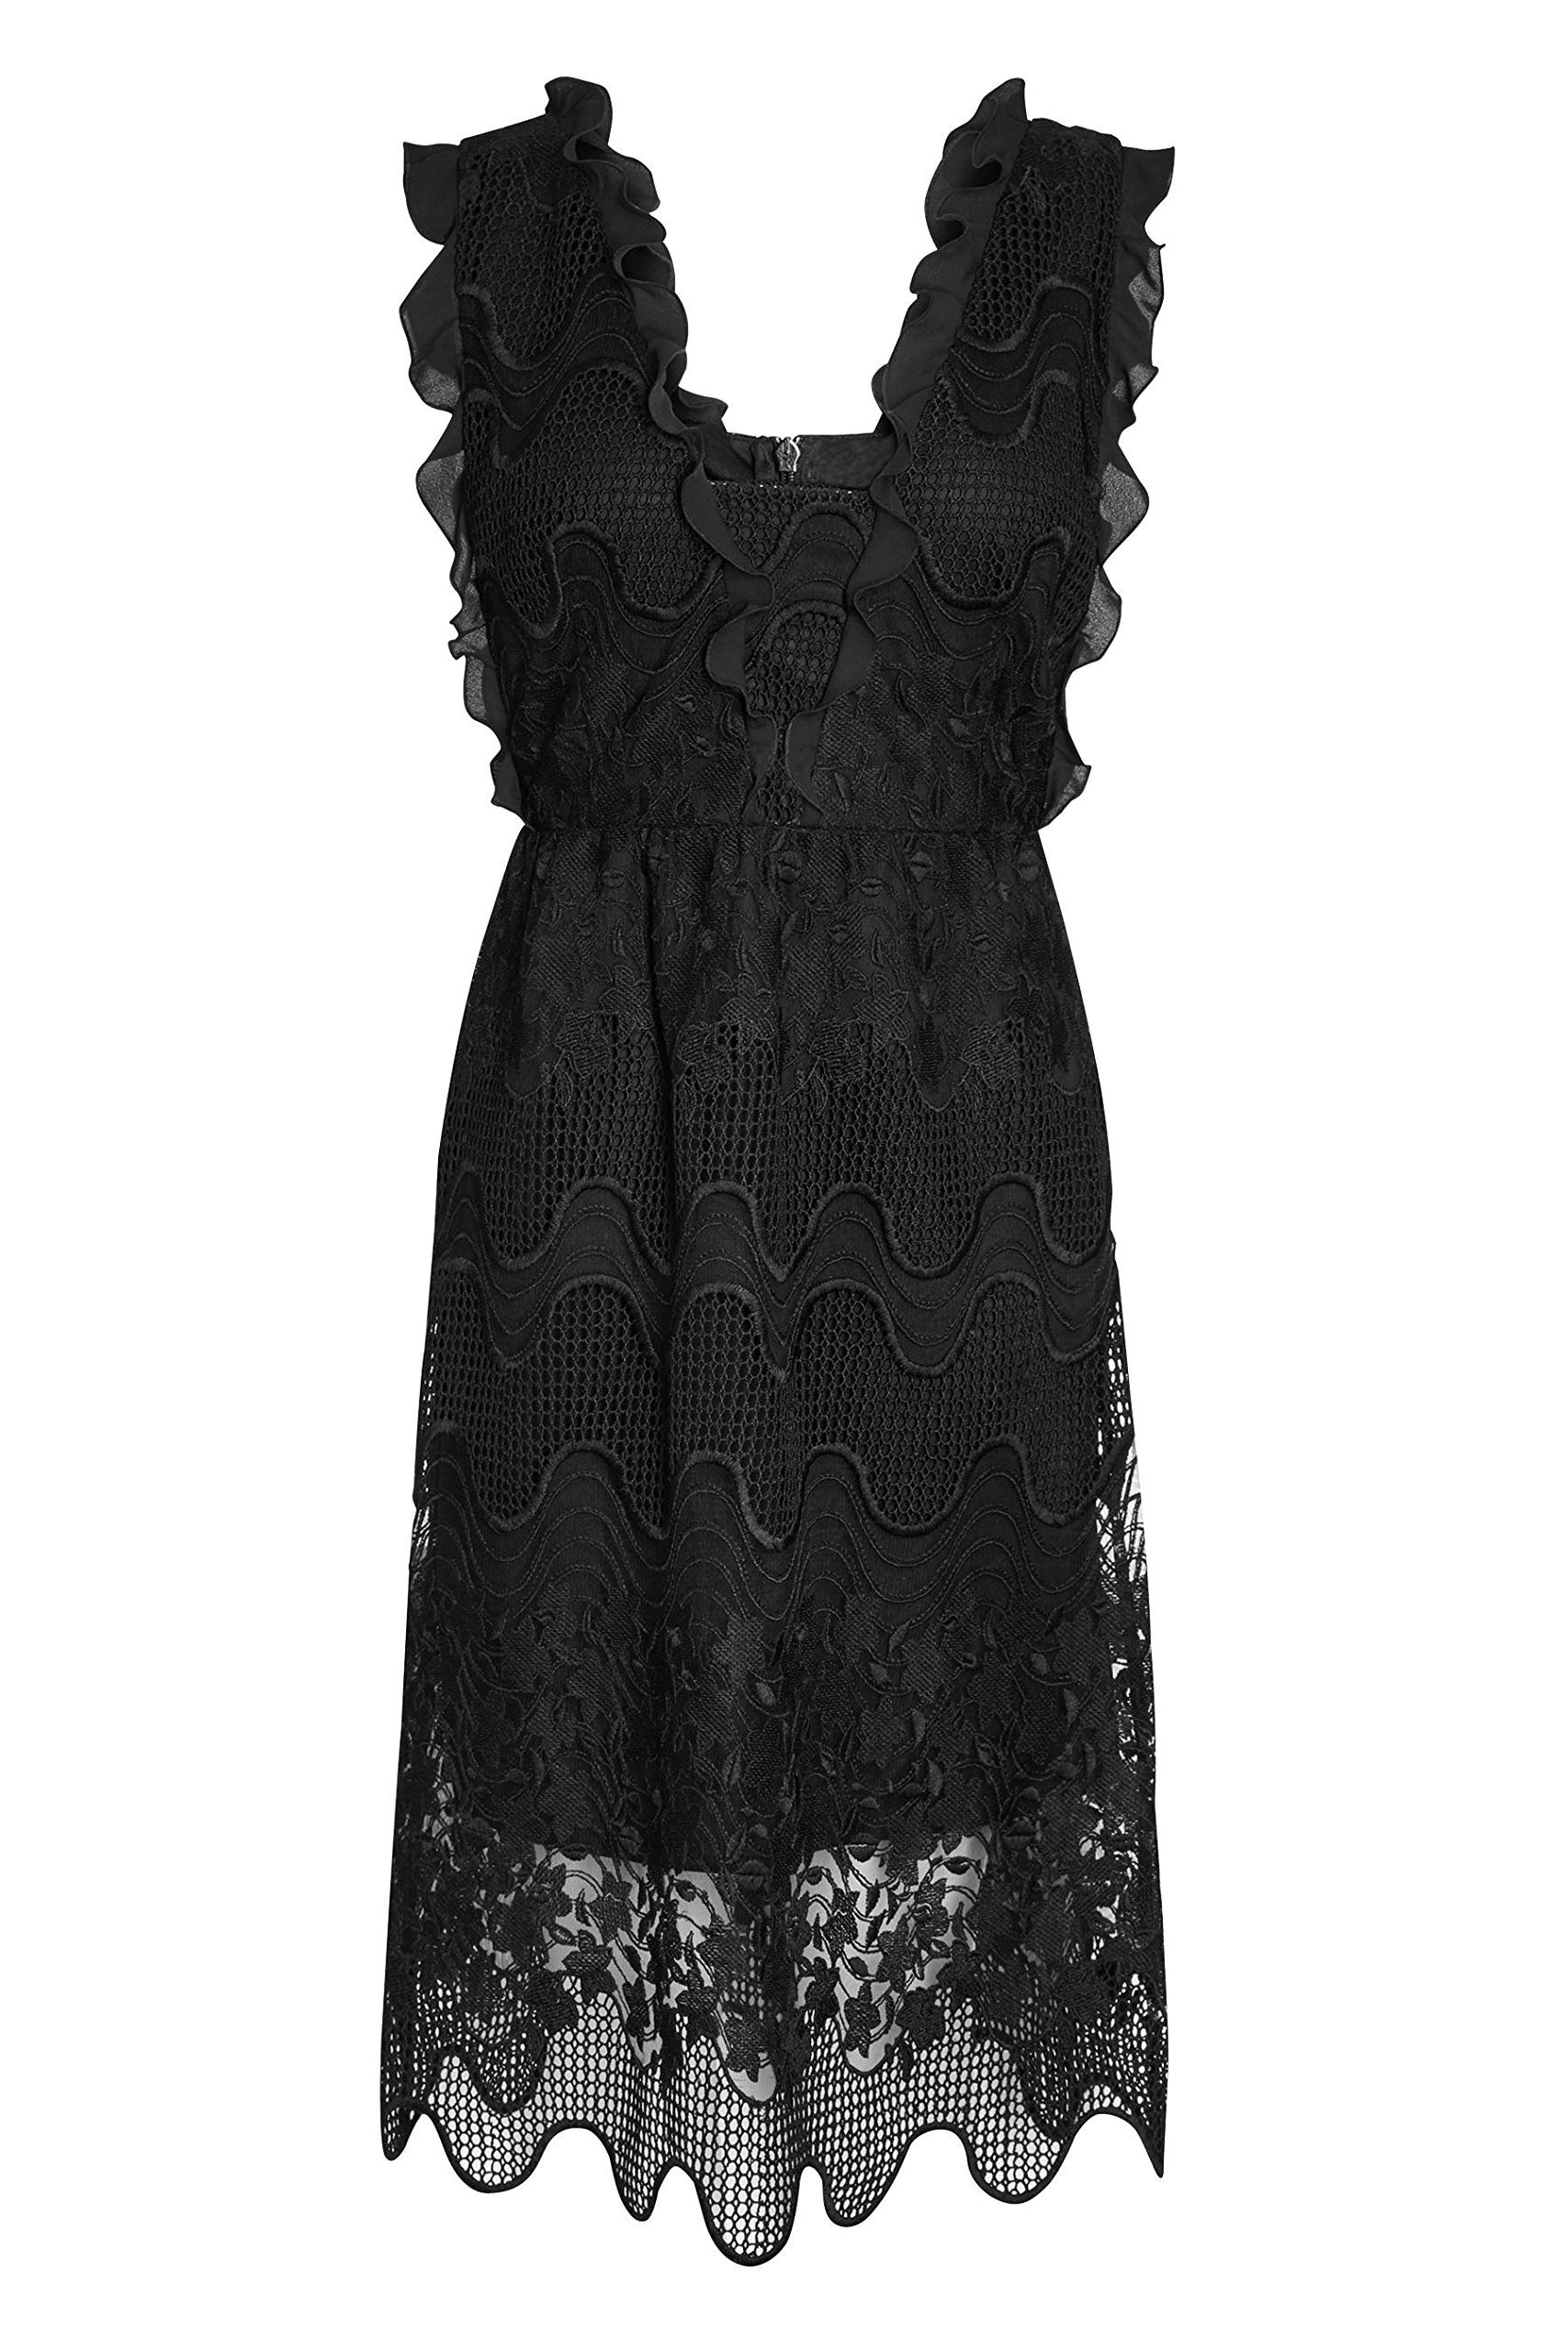 Black dress next - Next Women Black Ruffle Lace Midi Dress Petite Fit Next Is The Leading British Clothing